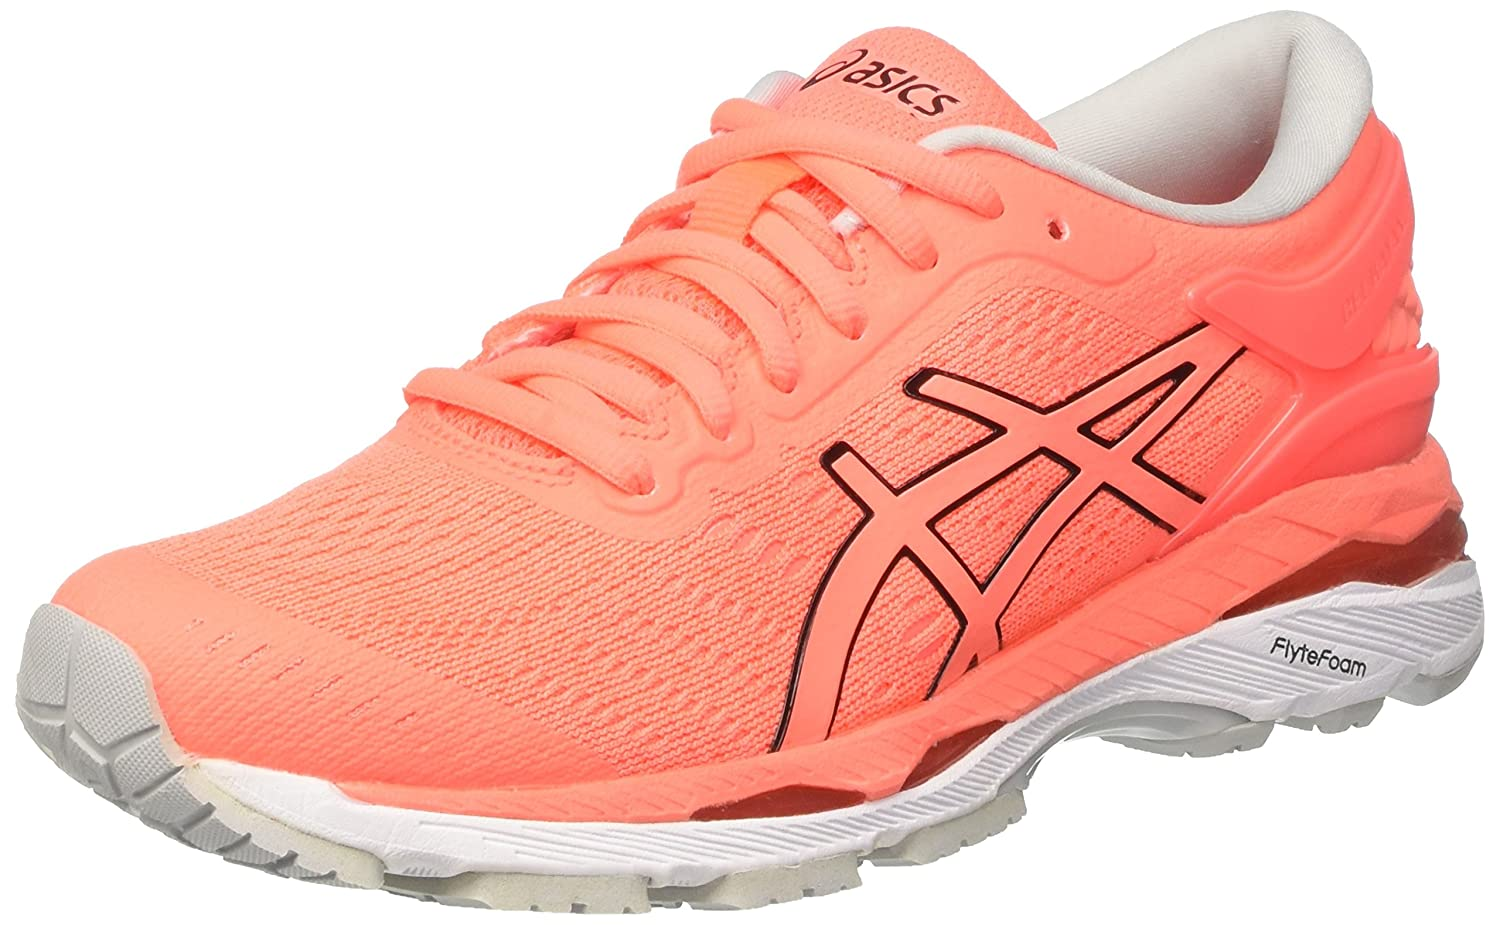 Orange (Flash Coral noir blanc) ASICS Gel-Kayano 24, Chaussures de Running Femme 39 EU